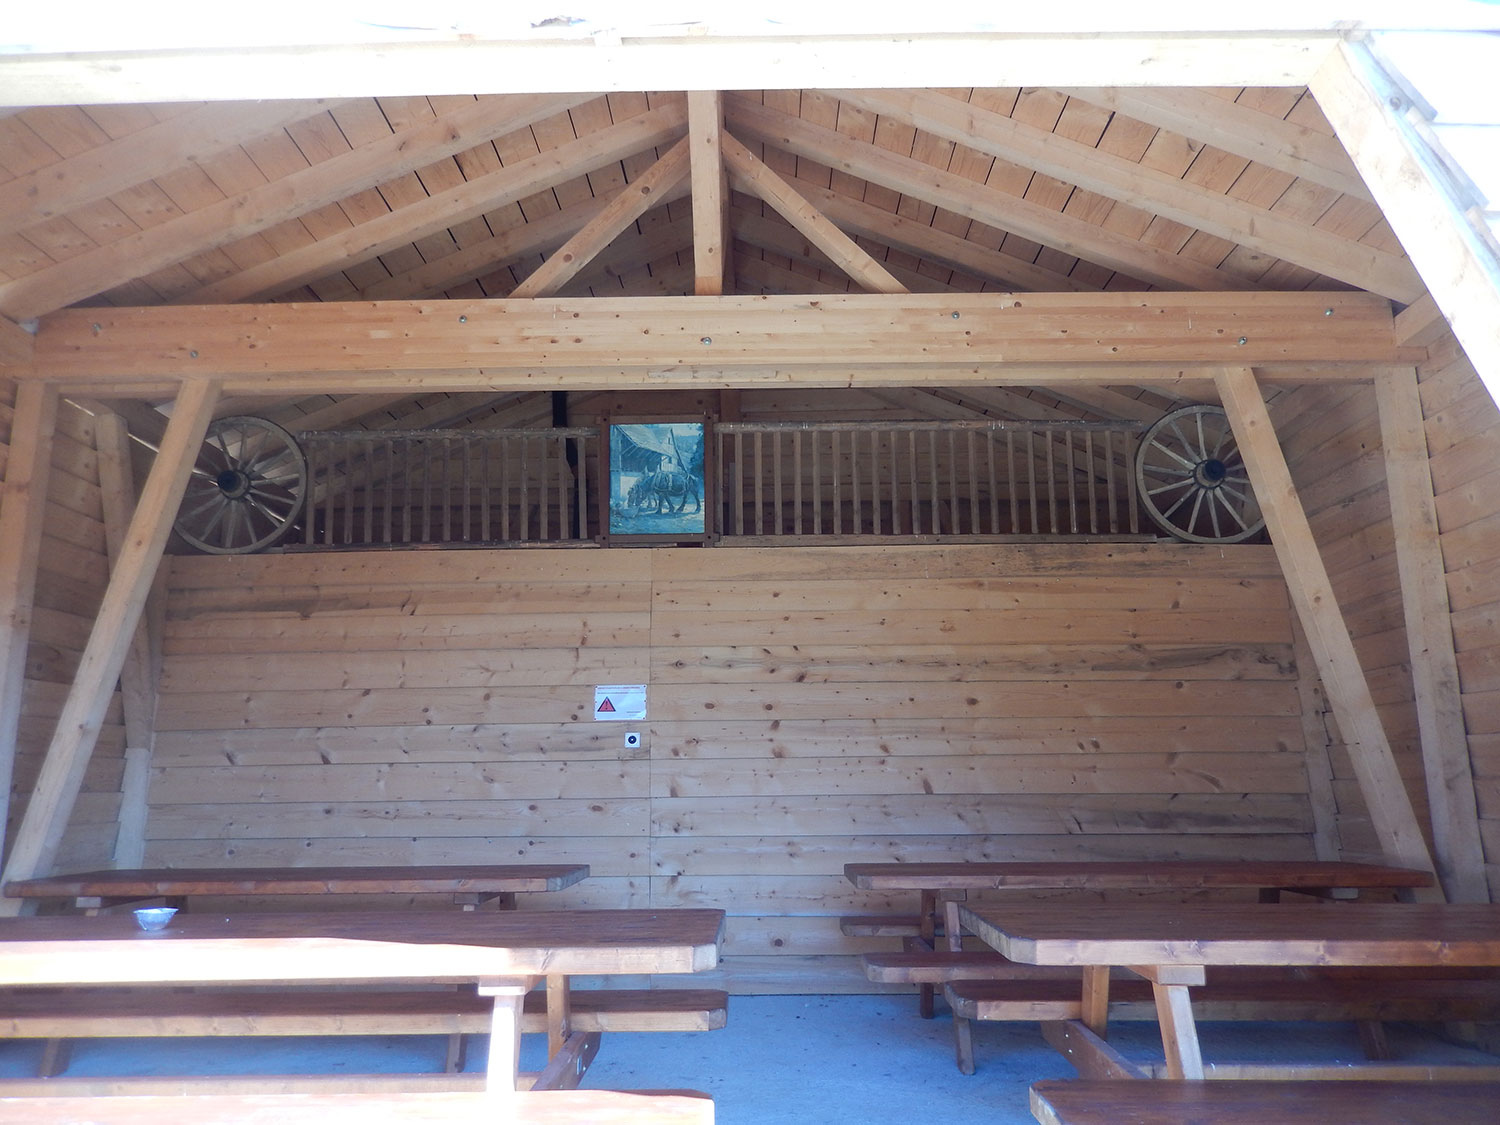 cabane-forestiere-saulcy-jura-suisse-4